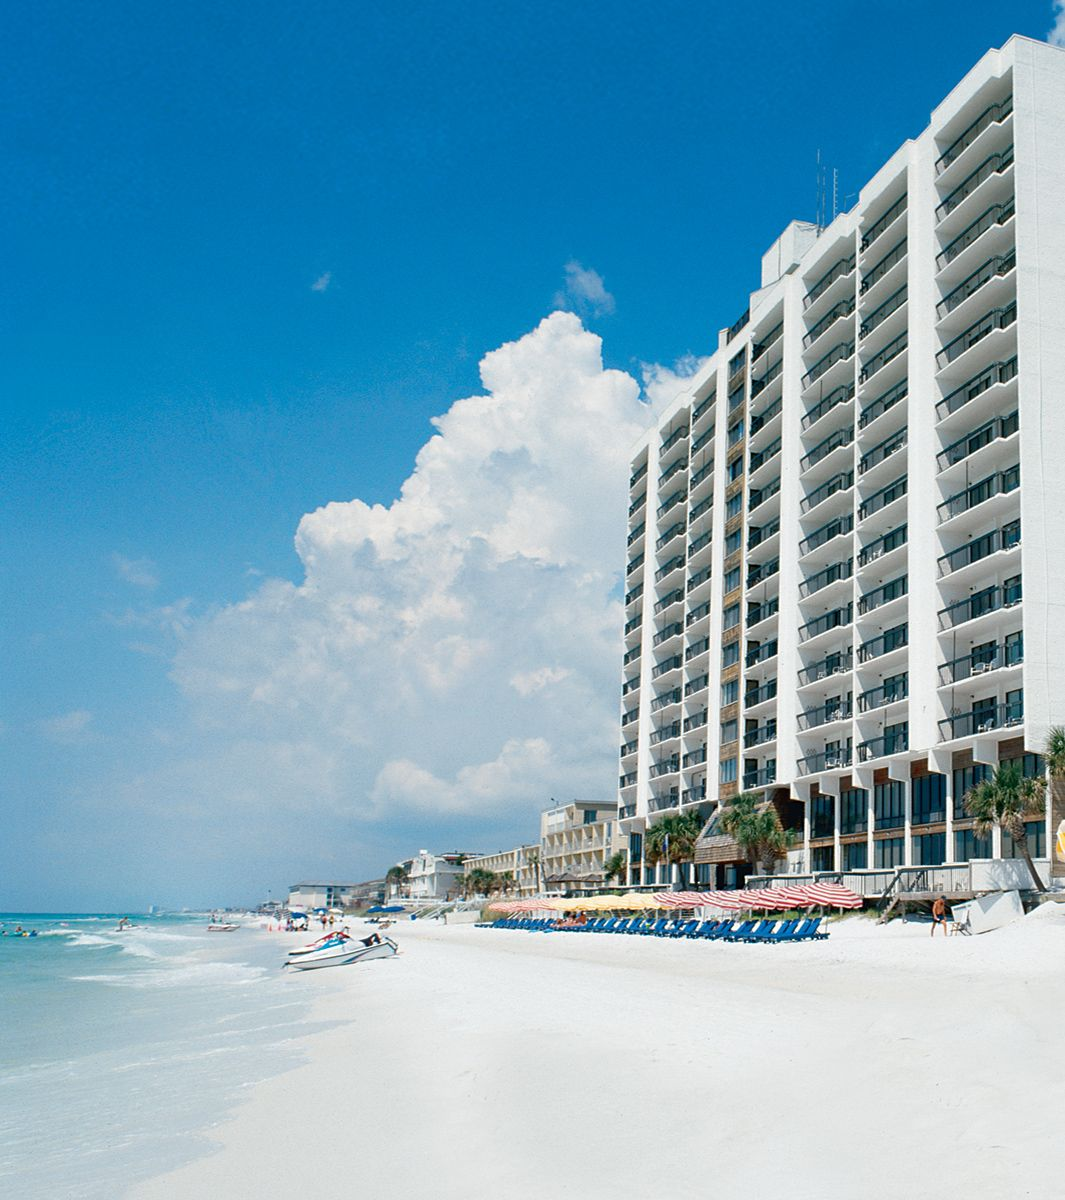 Beachfront At The Landmark Holiday Beach Resort In Panama City Beach Fl A Bluegreen Vacations Resort Panama City Beach Bluegreen Vacations Bluegreen Resorts